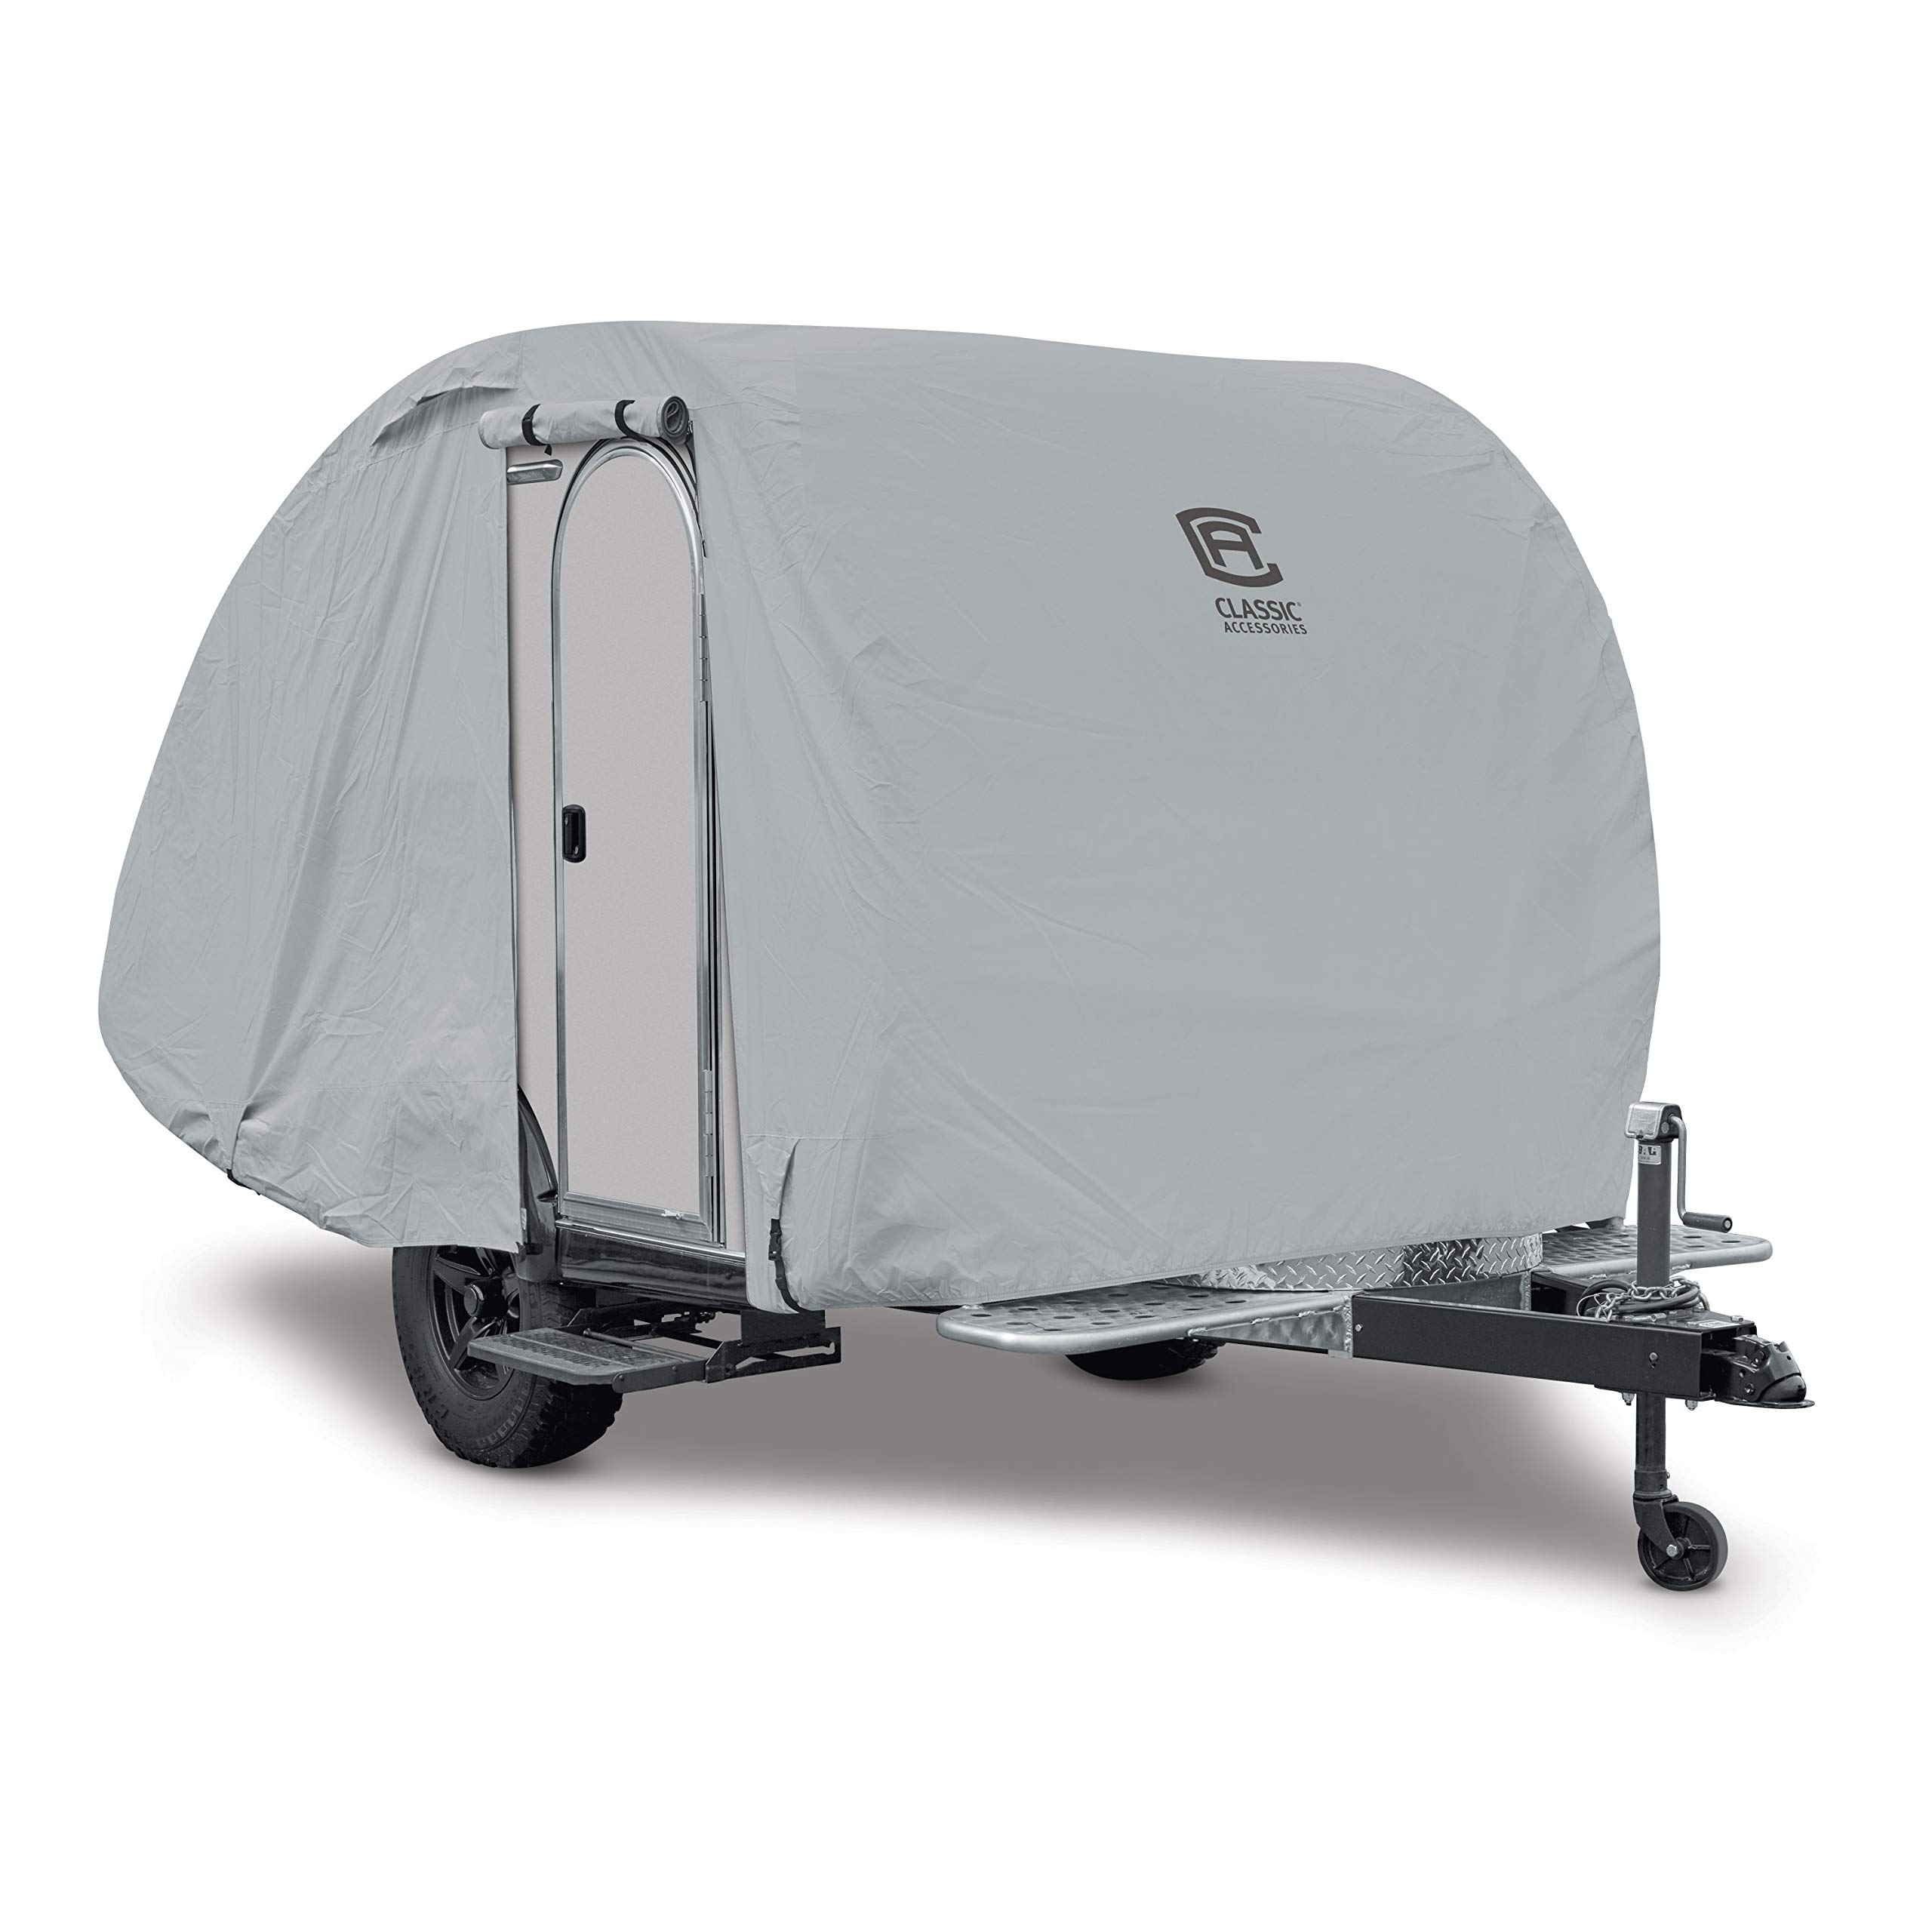 Classic Accessories PermaPro RV Cover for 8'-10' long x 5' Wide Tear Drop Trailers